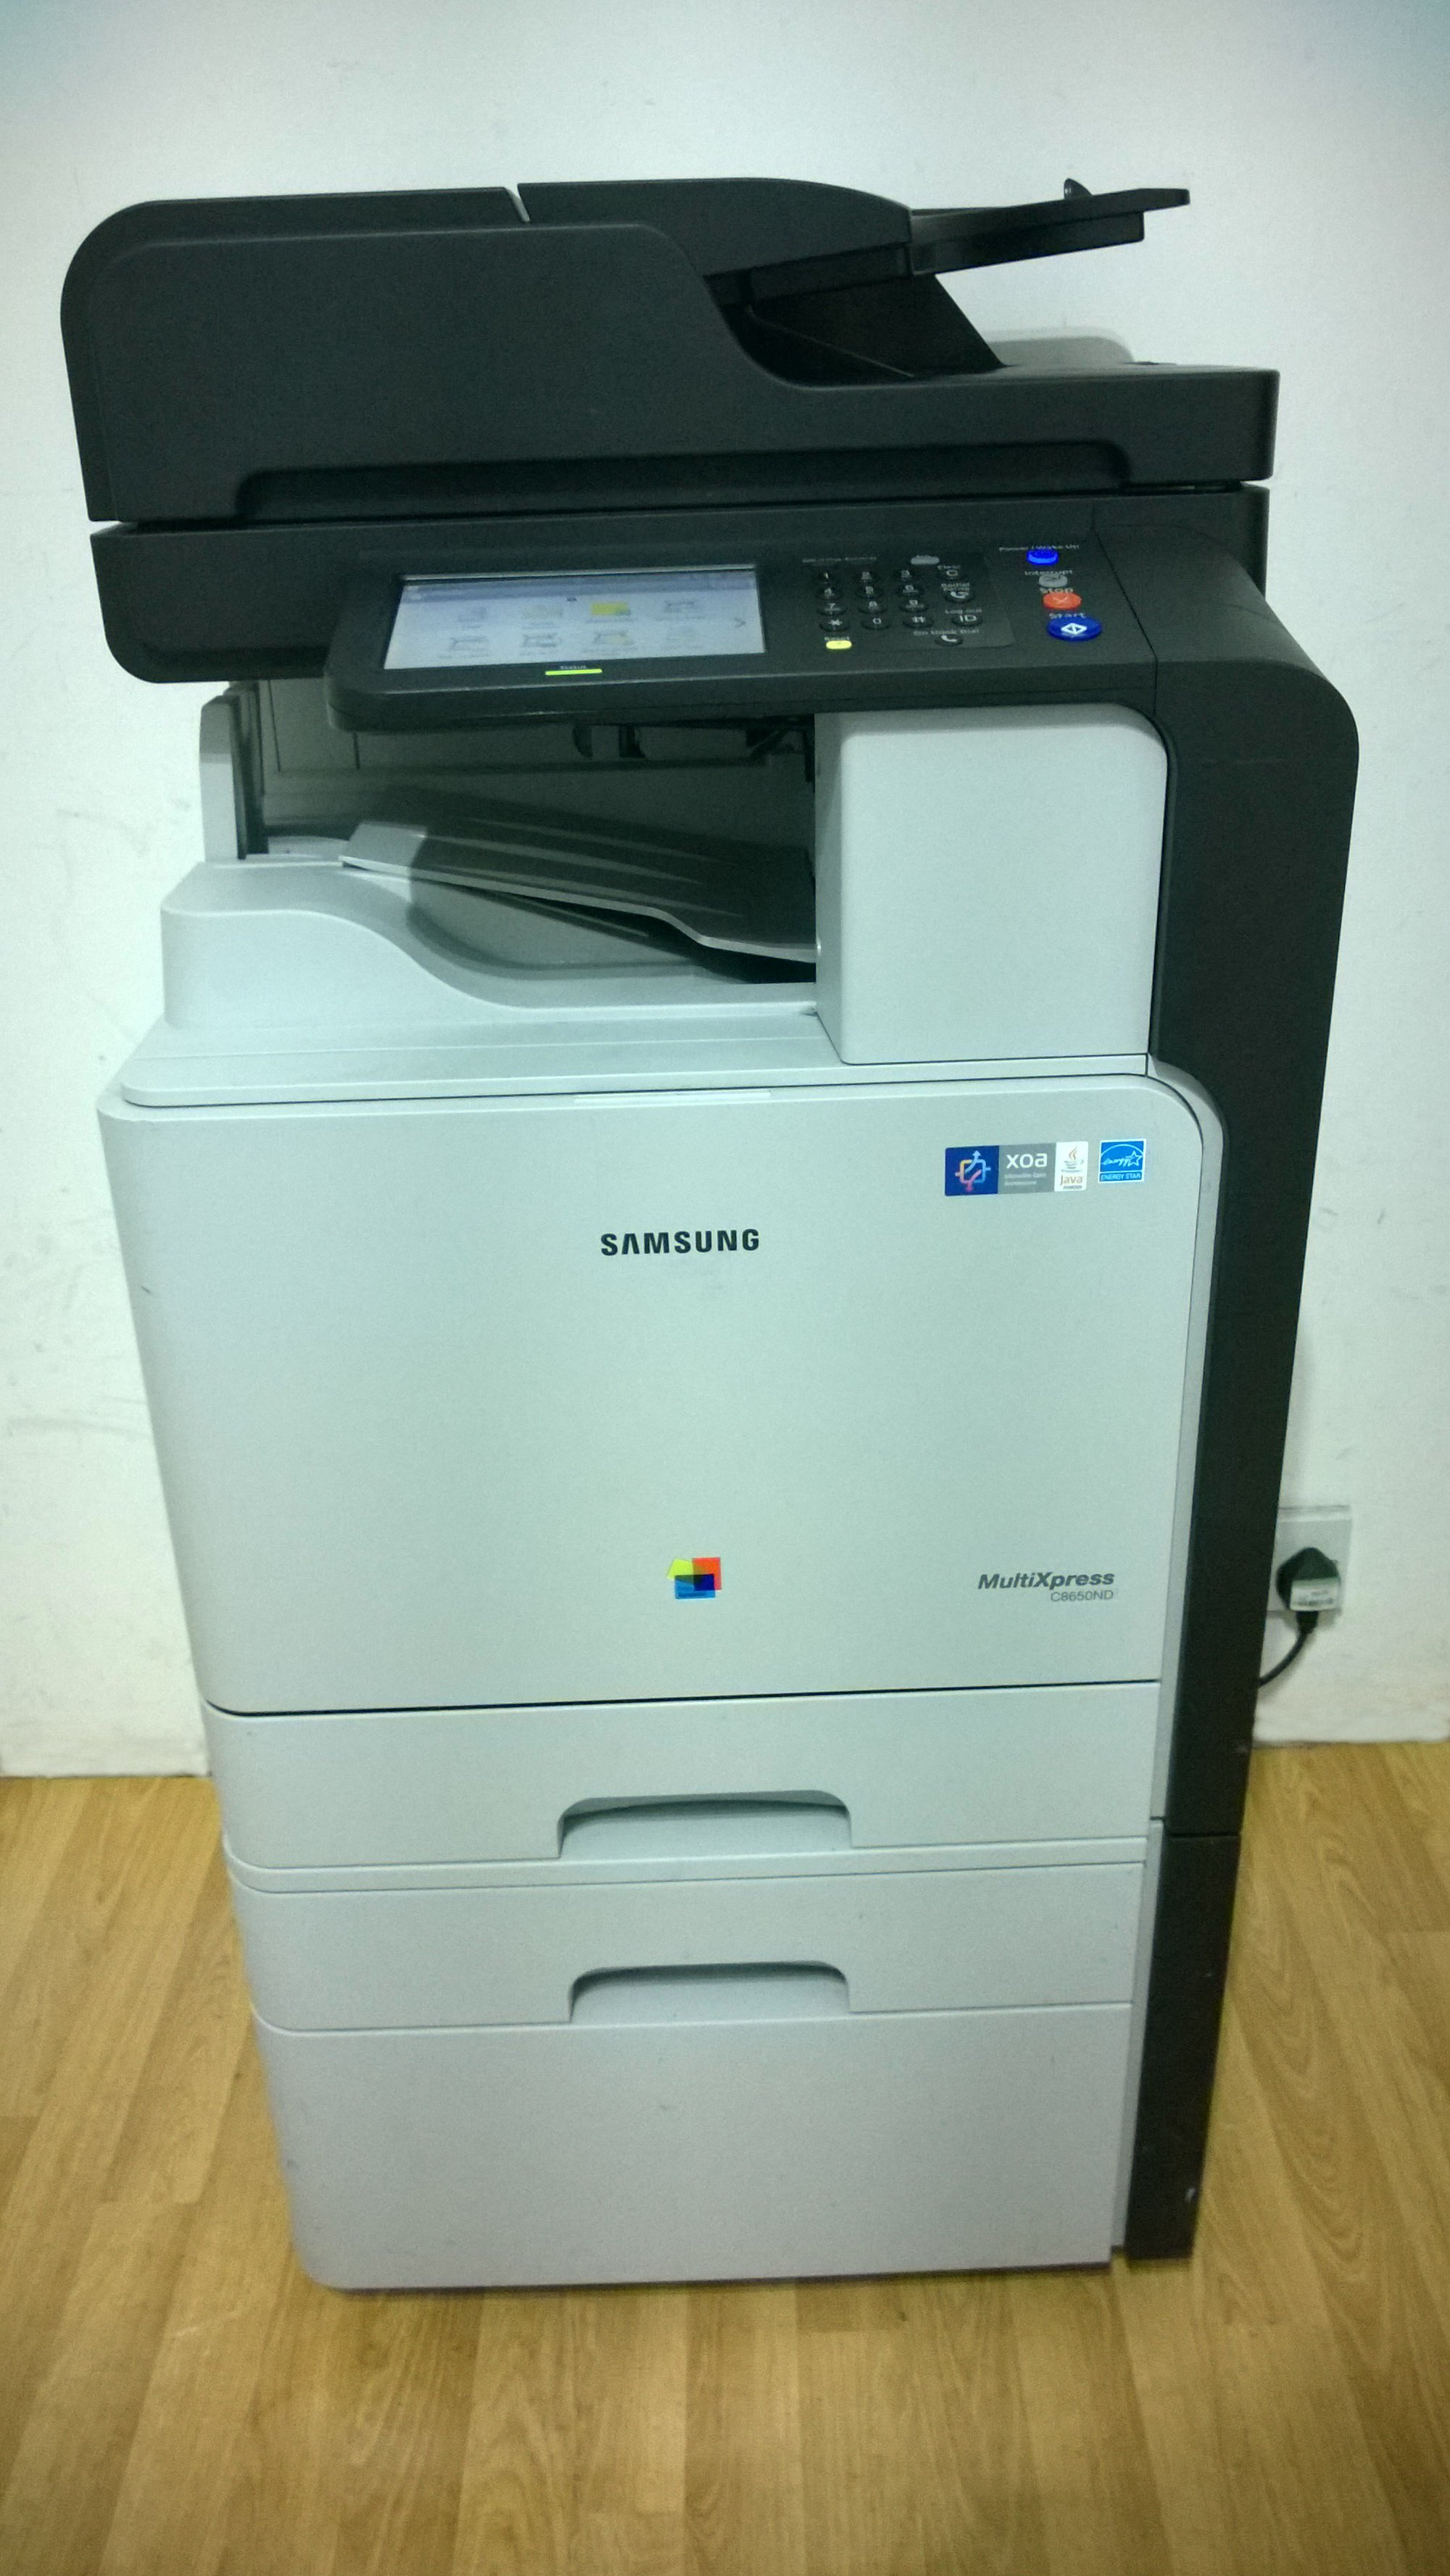 photocopiers to buy 220 a4 a3 refurbished used new. Black Bedroom Furniture Sets. Home Design Ideas